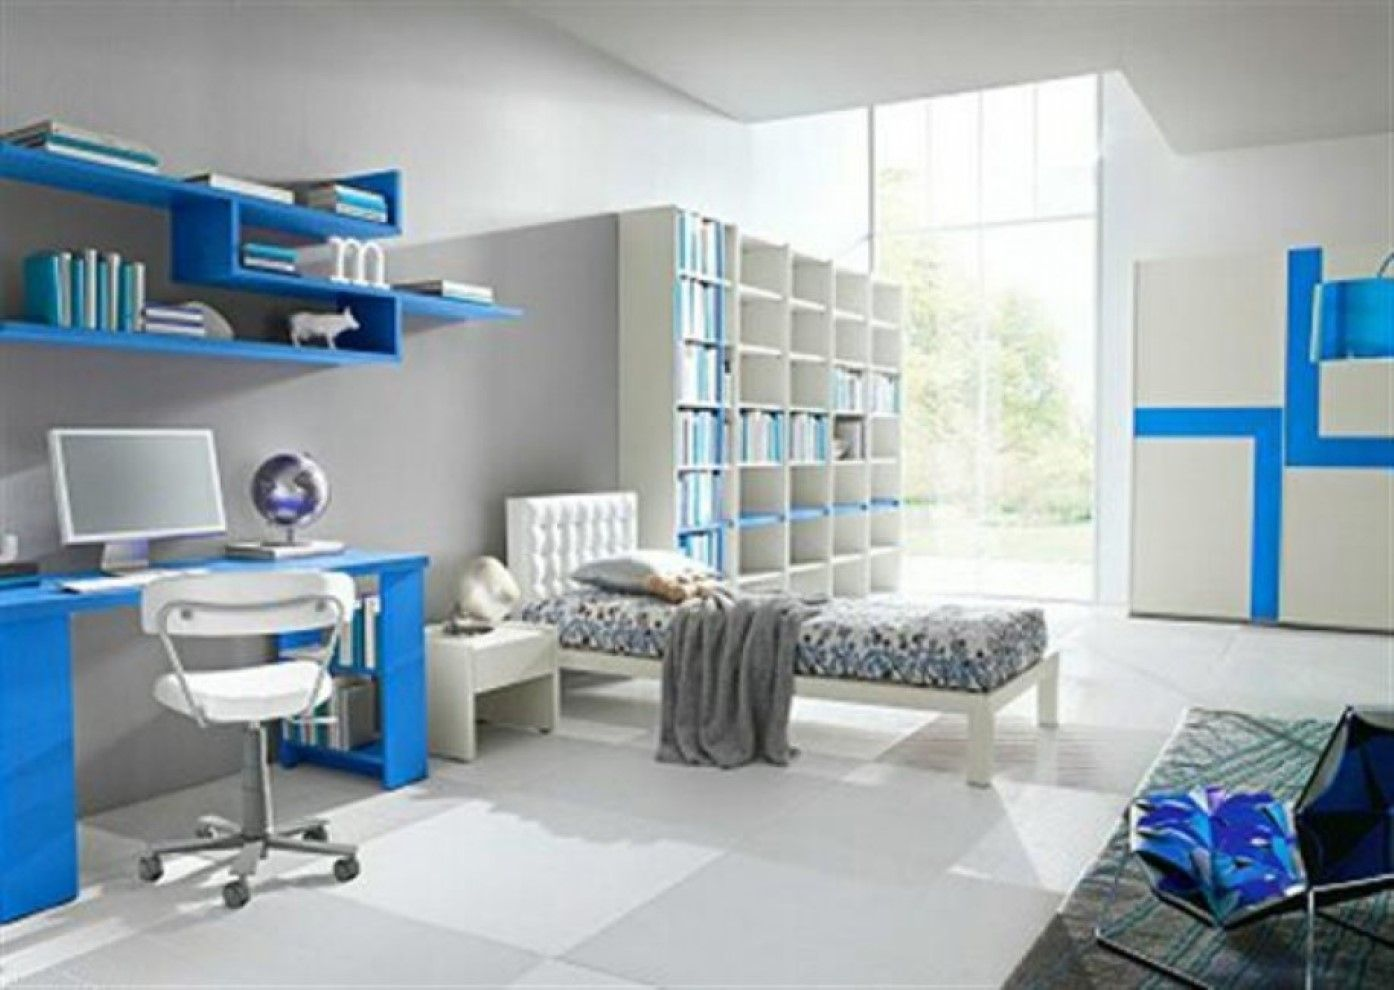 Cool Beds For Boys Stylish Computer Chair Feats Hanging Wall Bookshelf Also